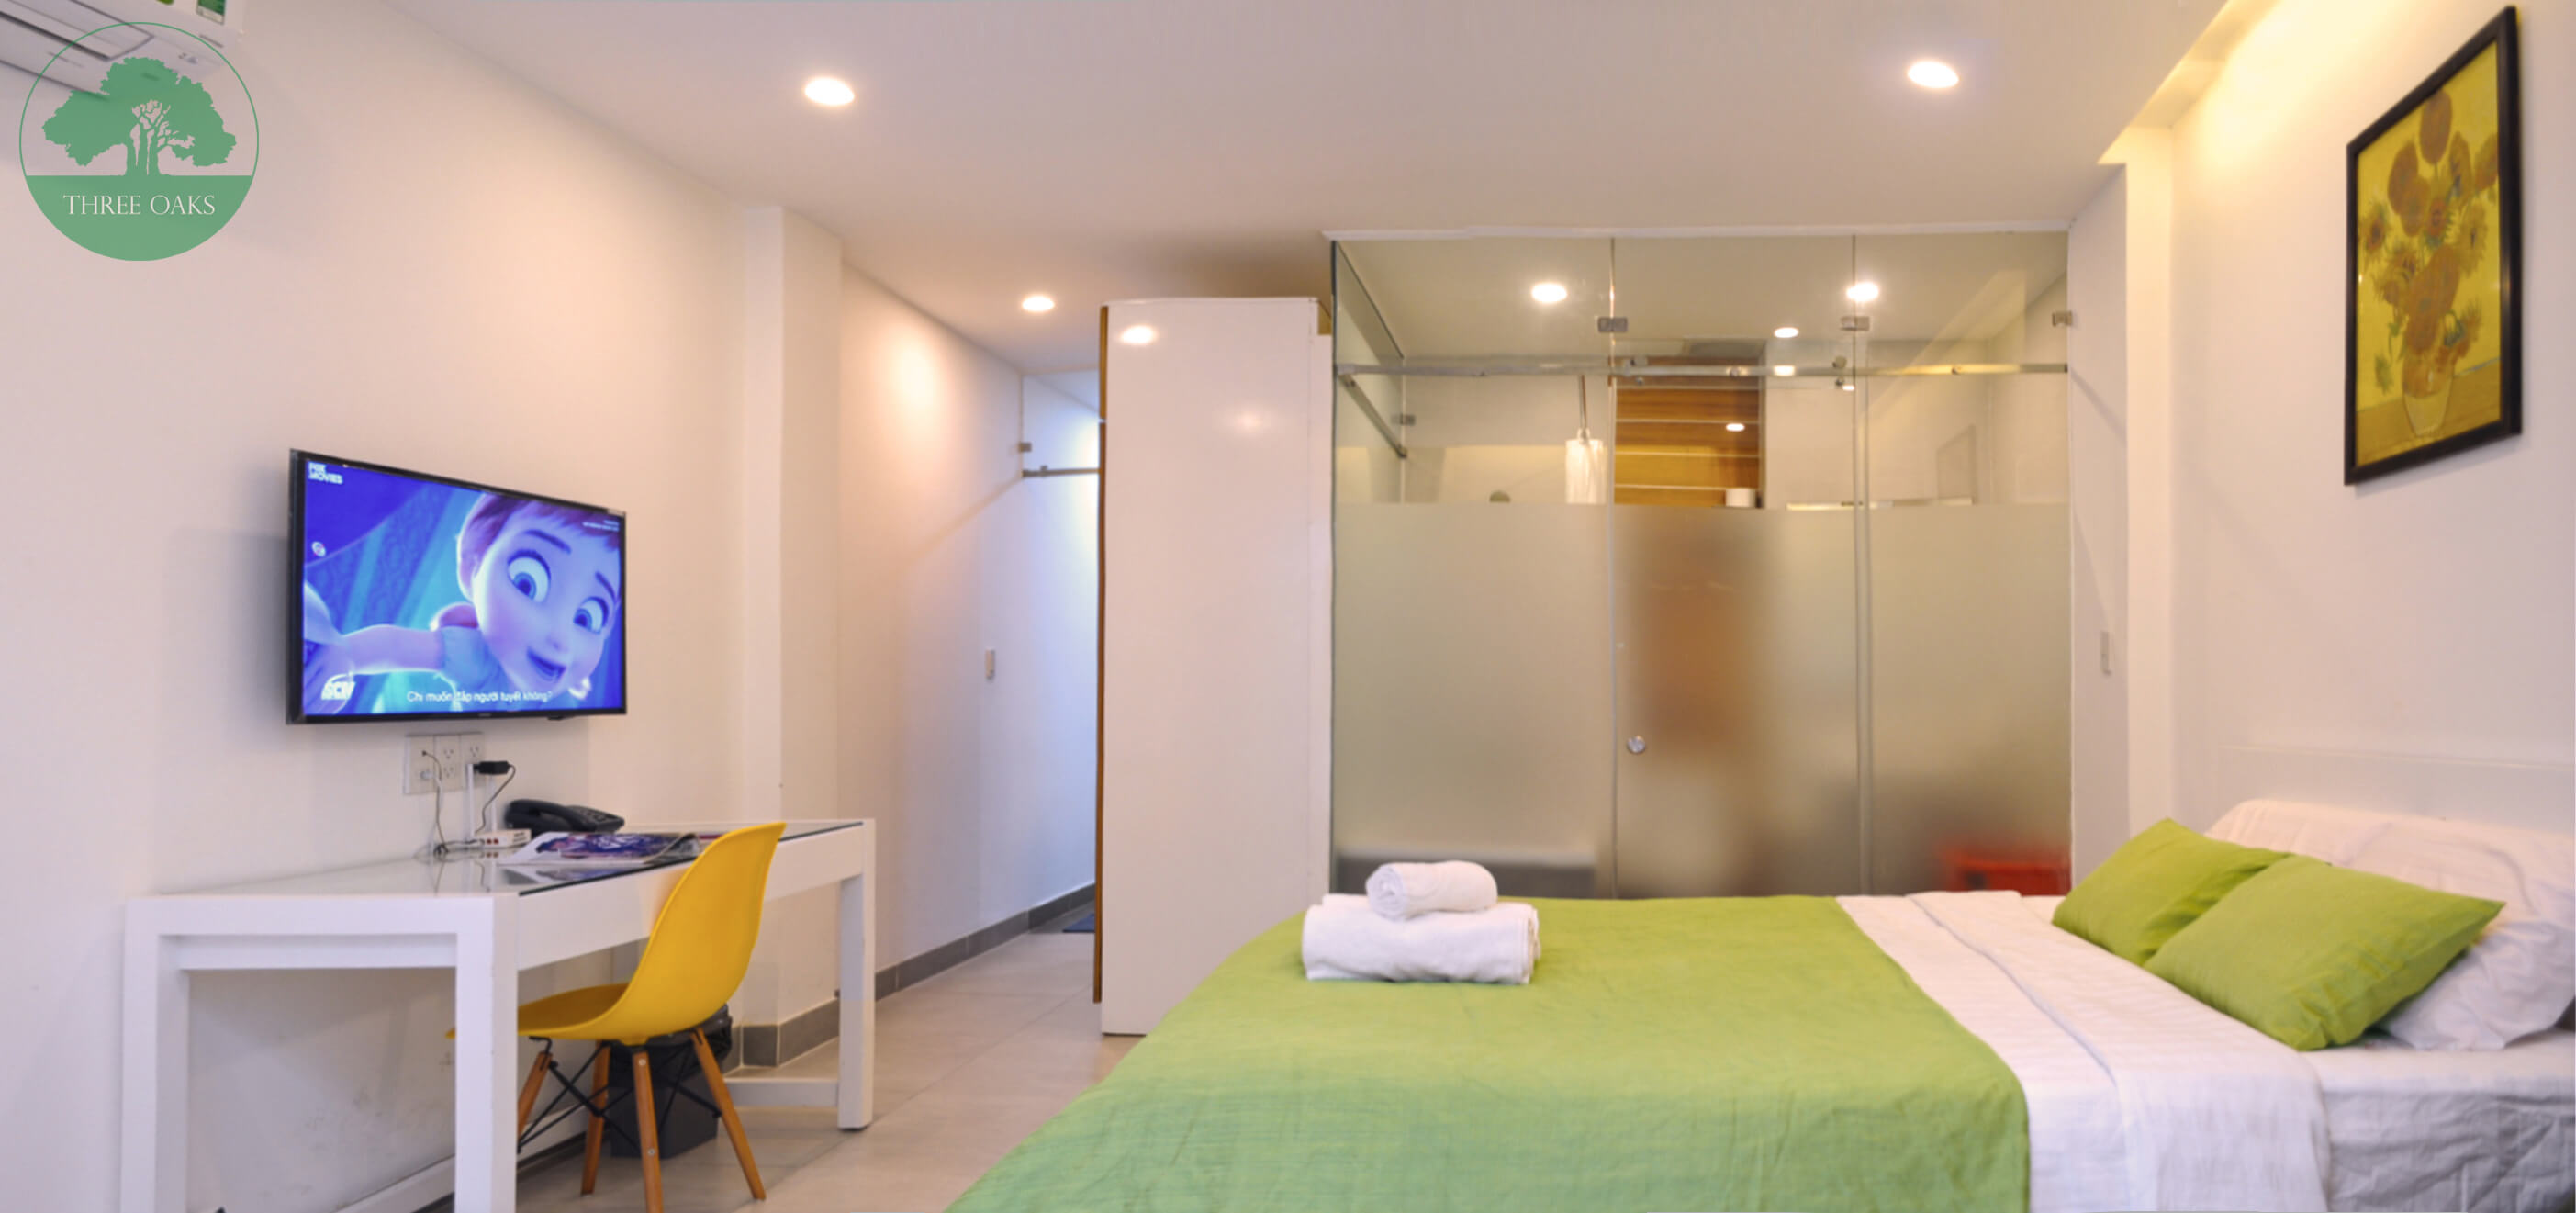 serviced-aparment-room-for-rent-saigon-One-bedroom-with-Small-backyard-10